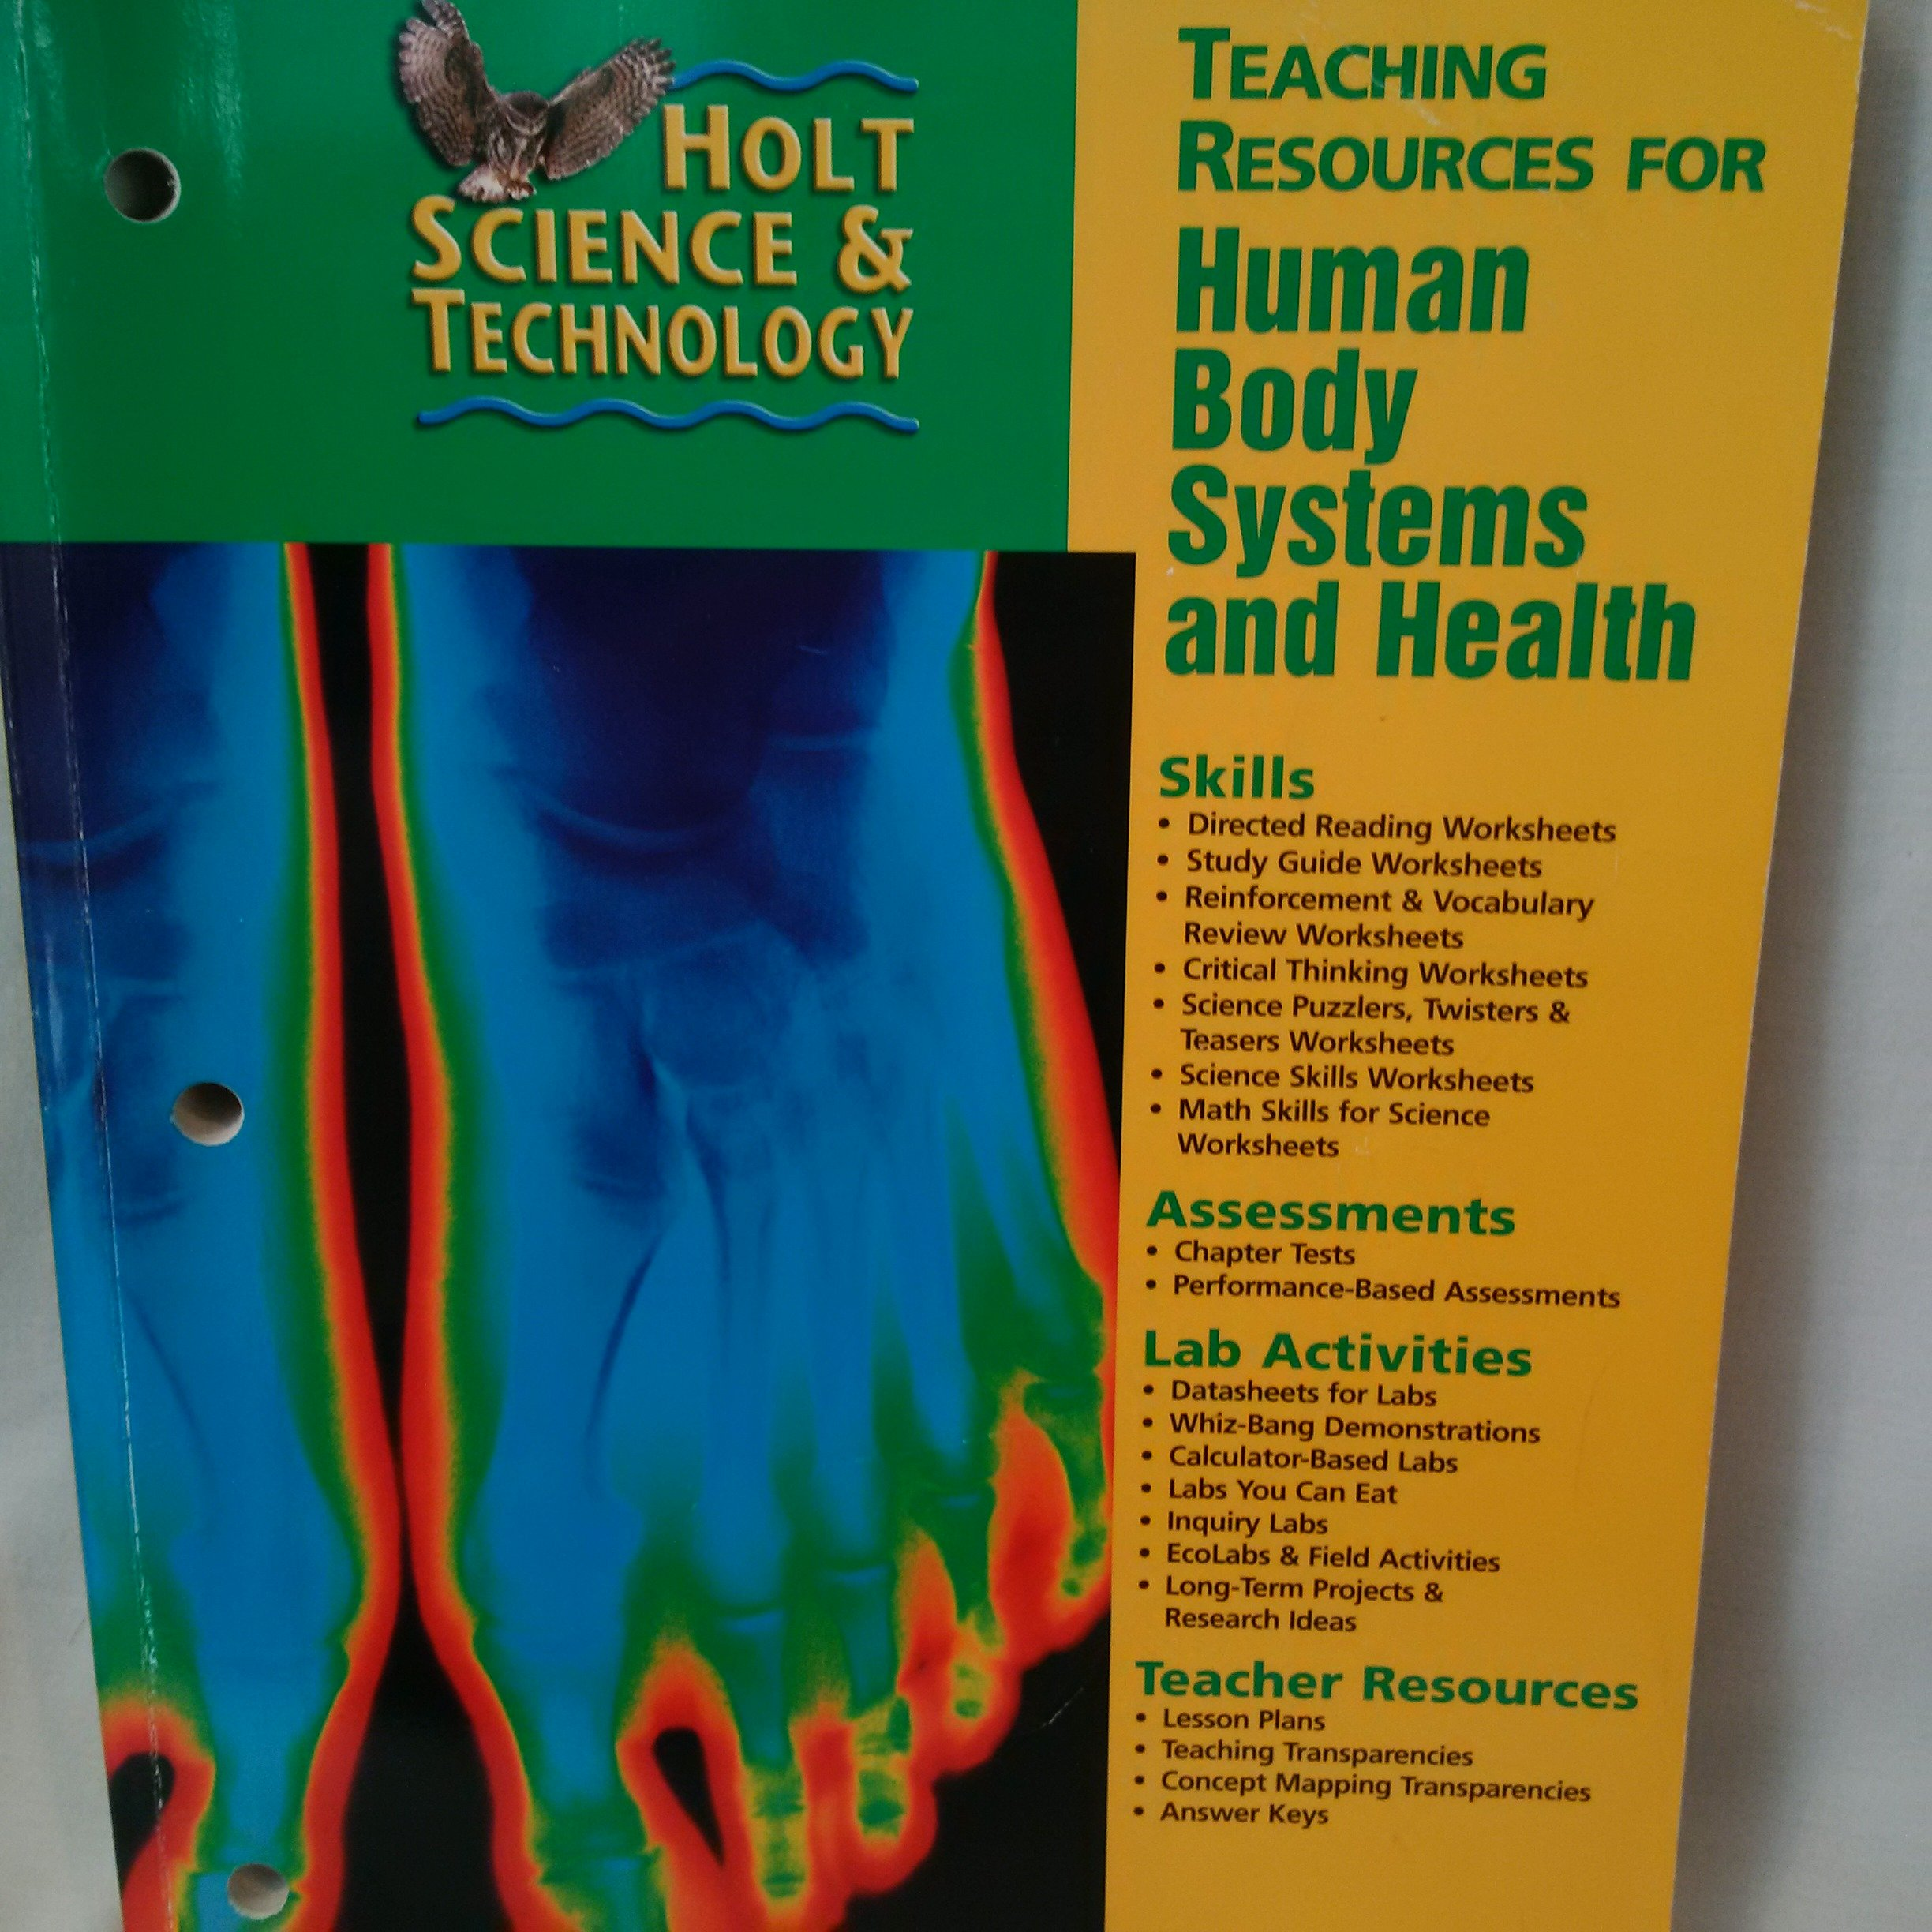 Body Systems Concept Map Answer Key.Holt Science And Technology Teaching Resources For Human Body